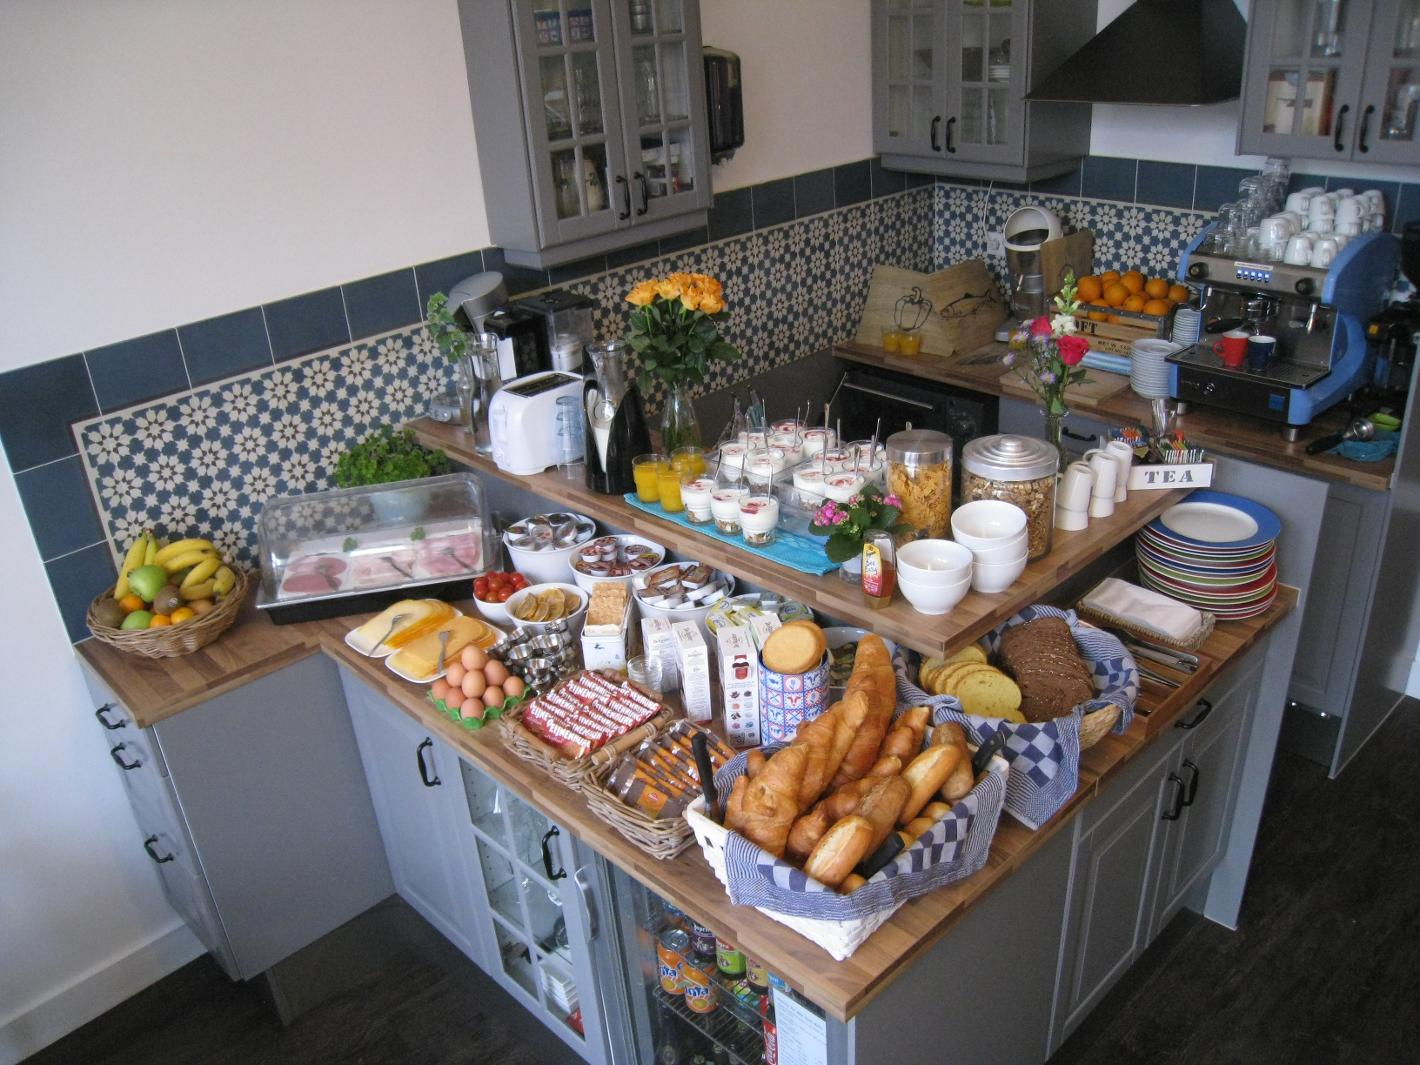 Foto B&B Hotel Malts in Haarlem, Slapen, Bed & breakfast - #4